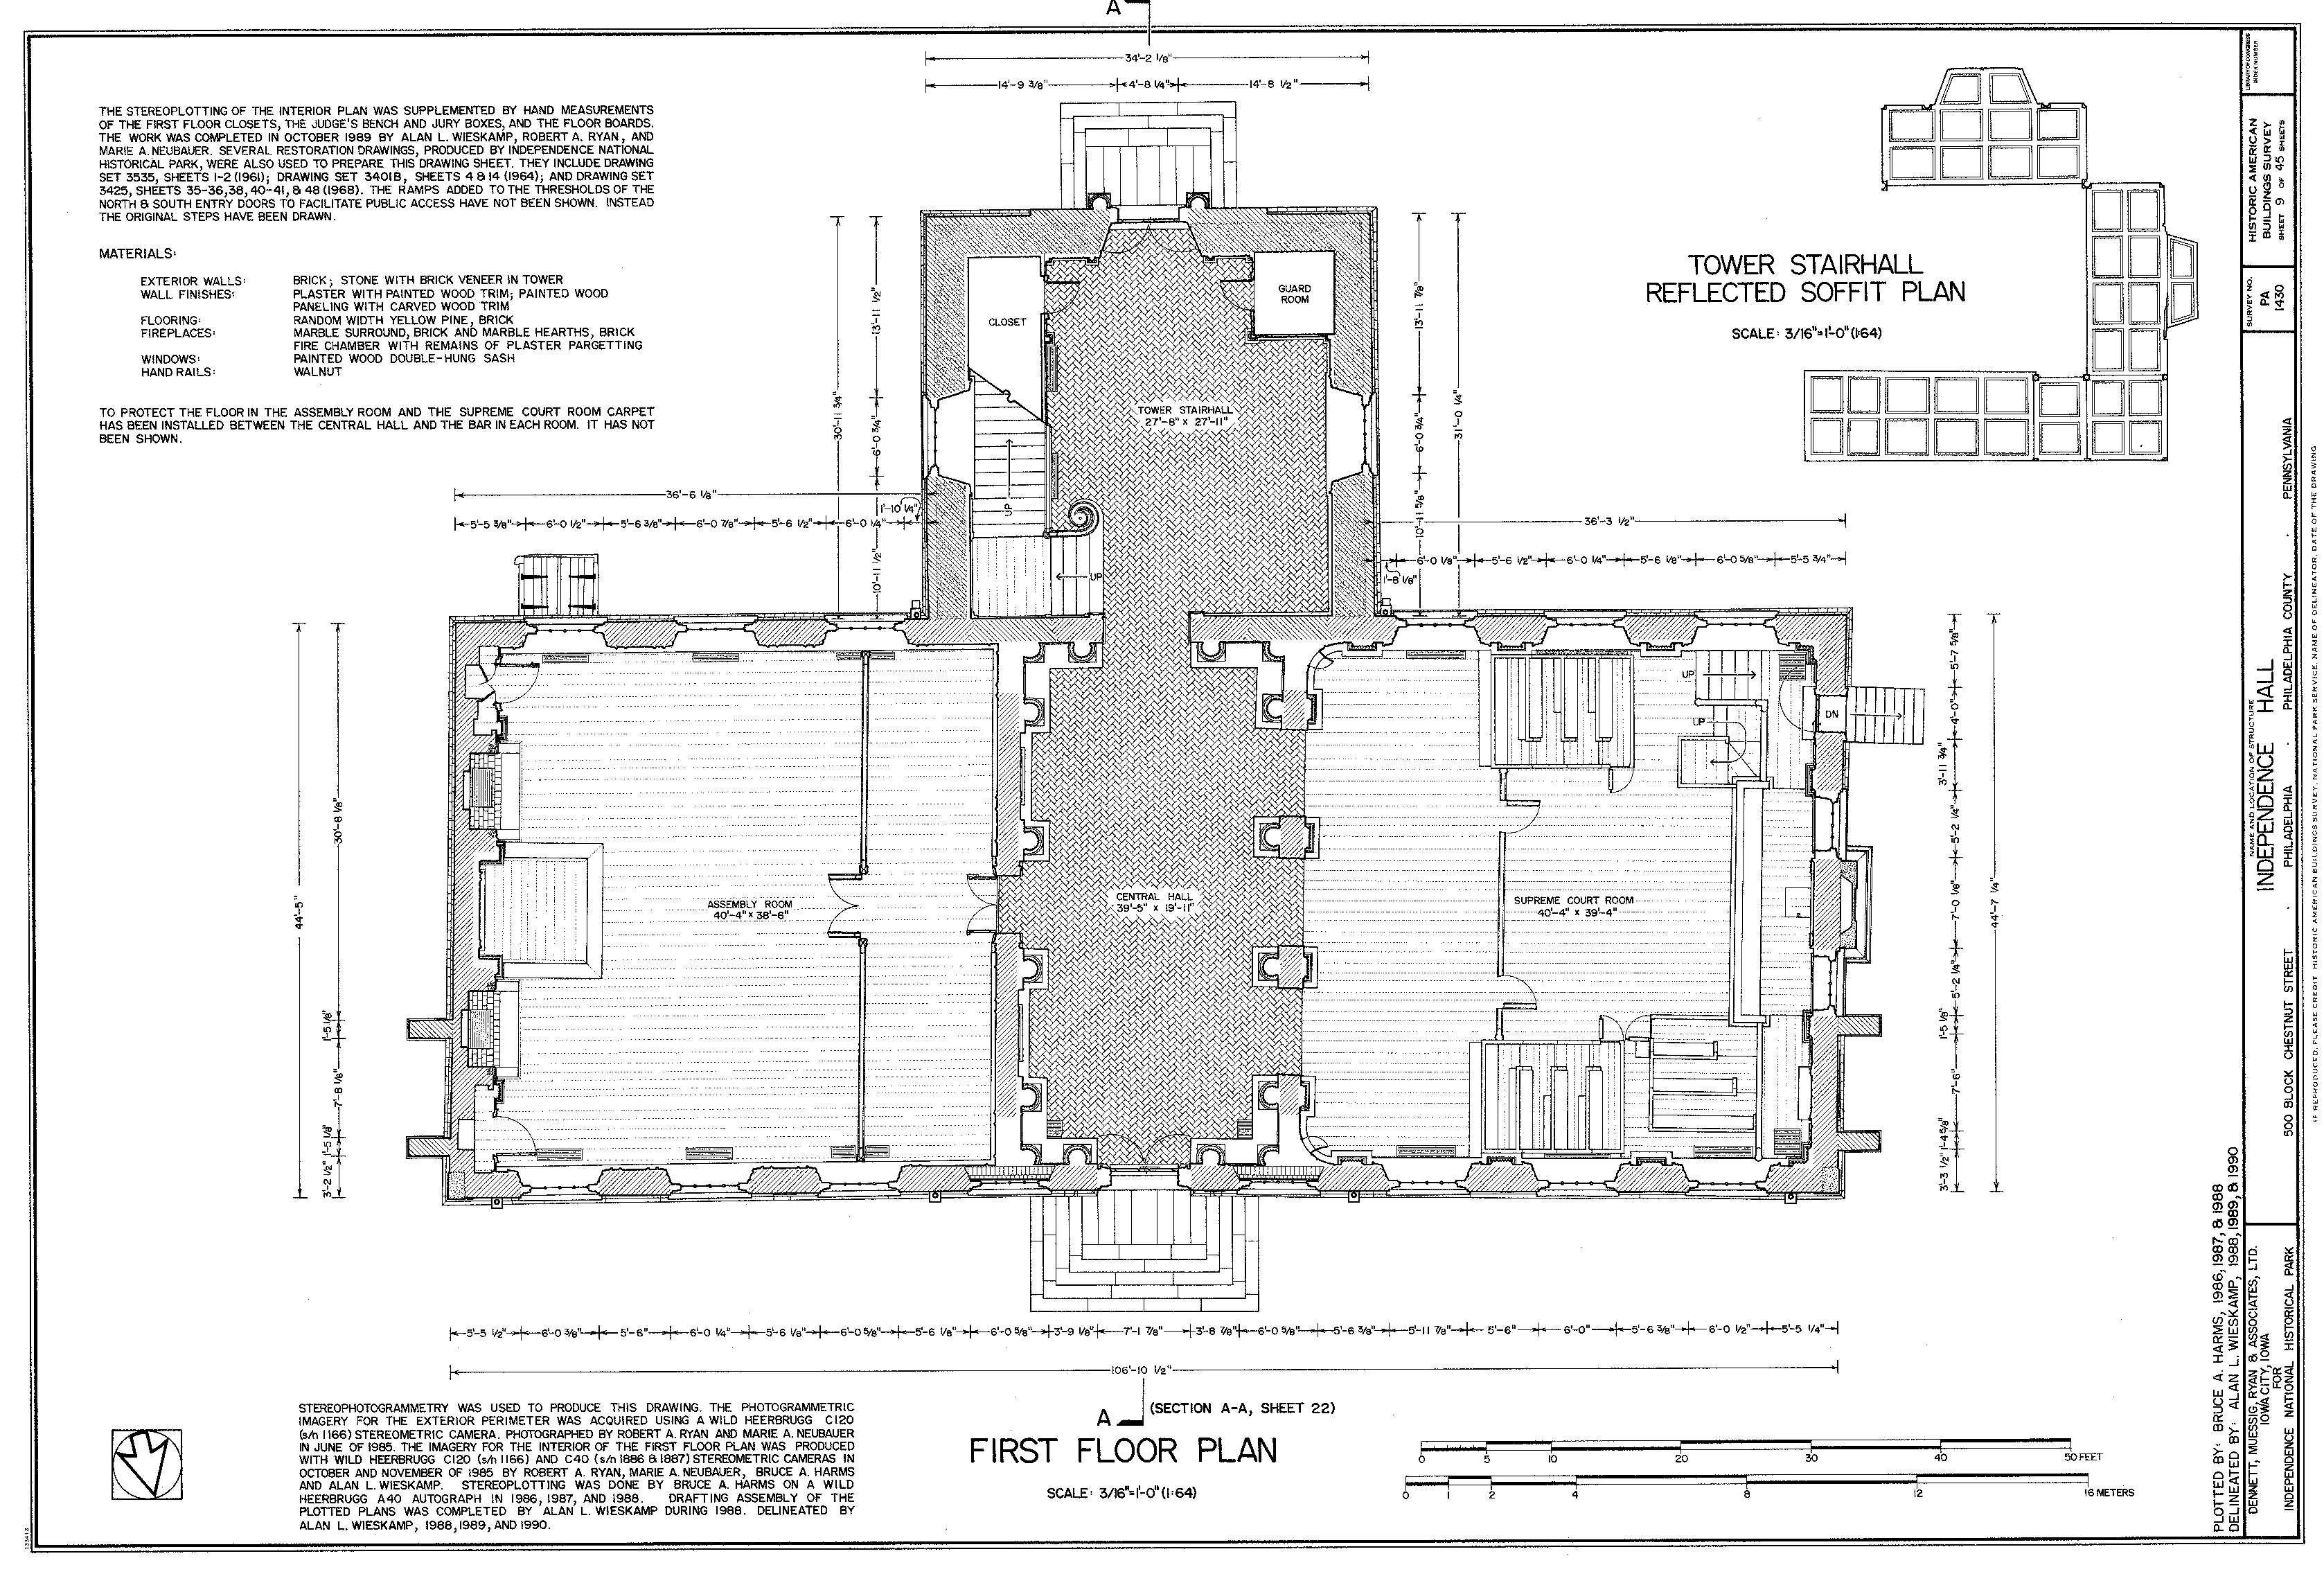 Datoteka Habs Measured Drawing Of The First Floor Of